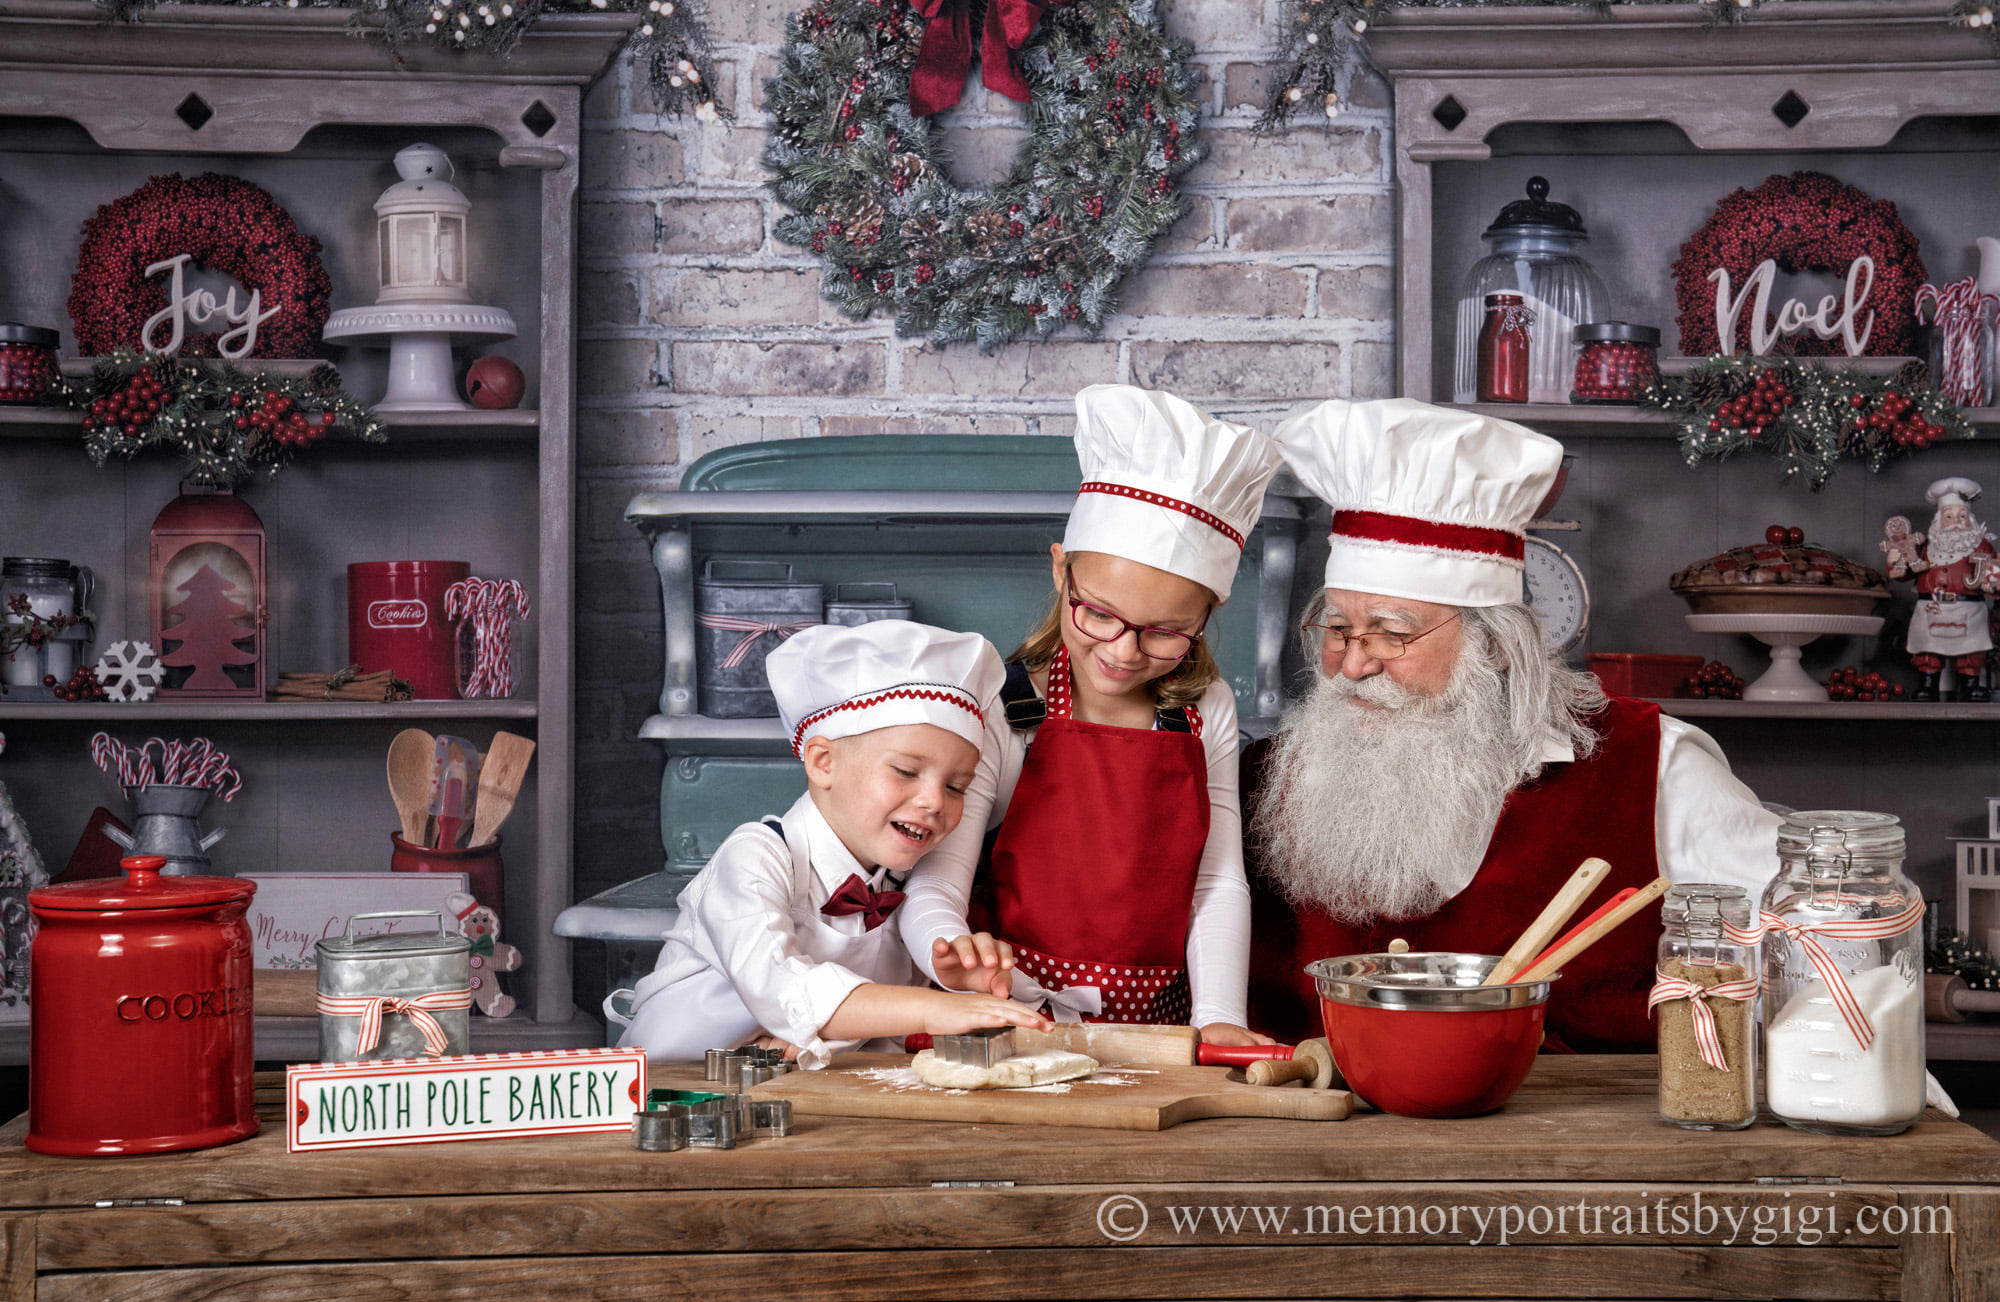 Reid and Kinsley cooking with Santa